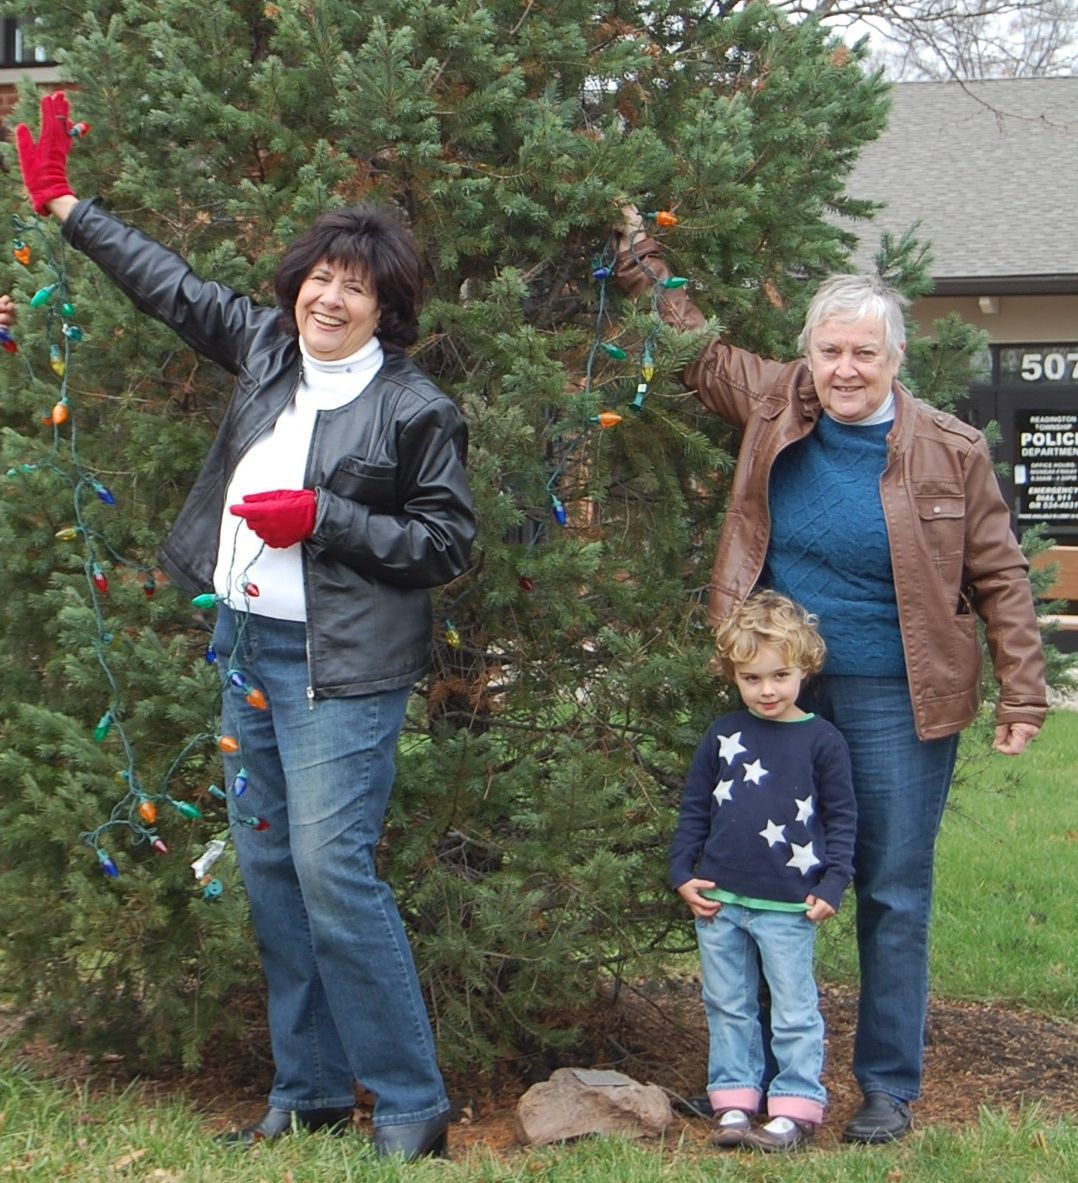 'Making Spirits Bright' with Readington's 12th annual holiday tree lighting